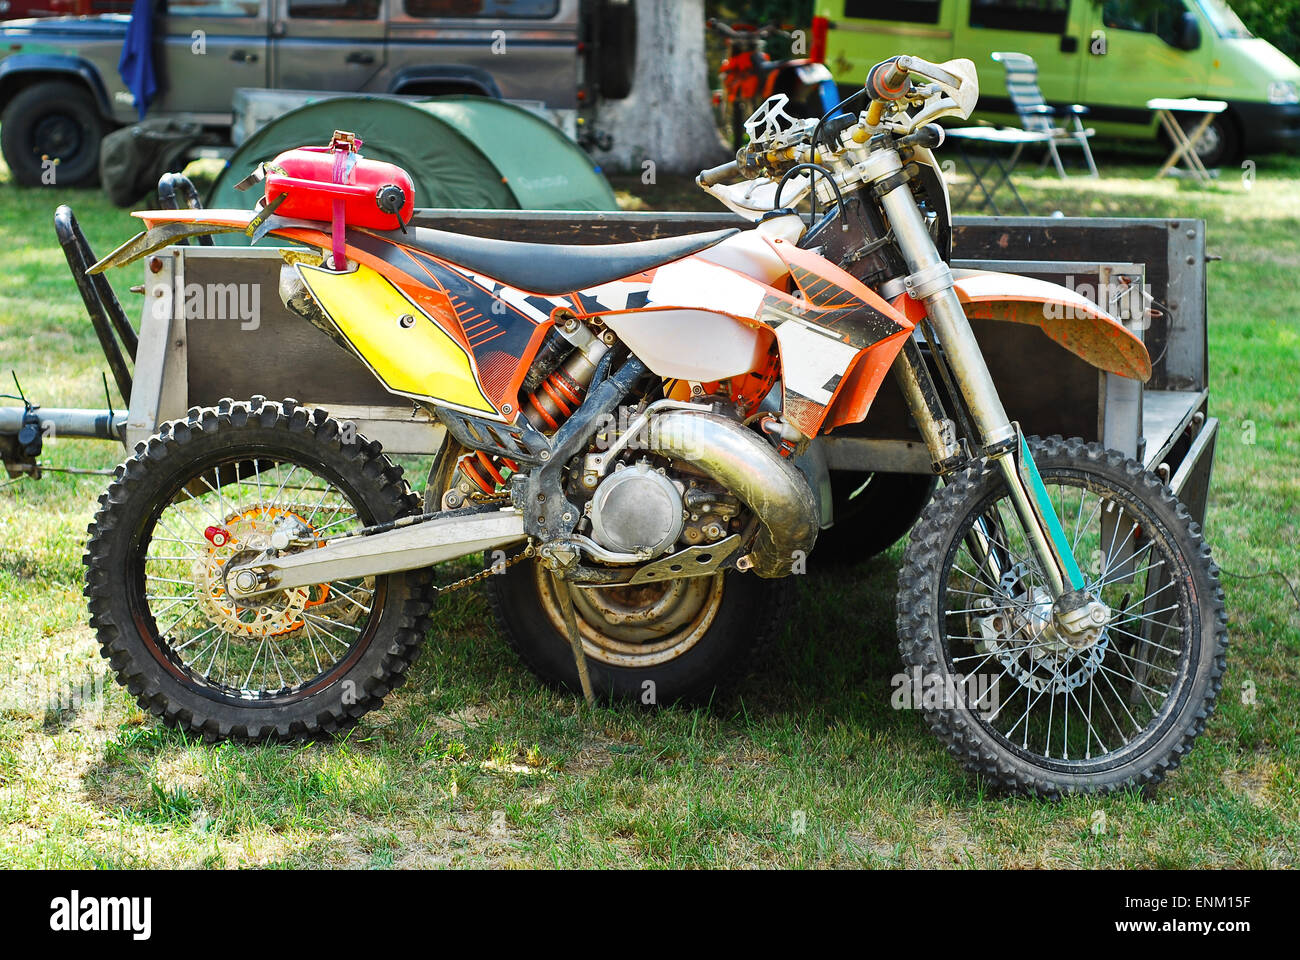 dirty motocross bike profile view - Stock Image